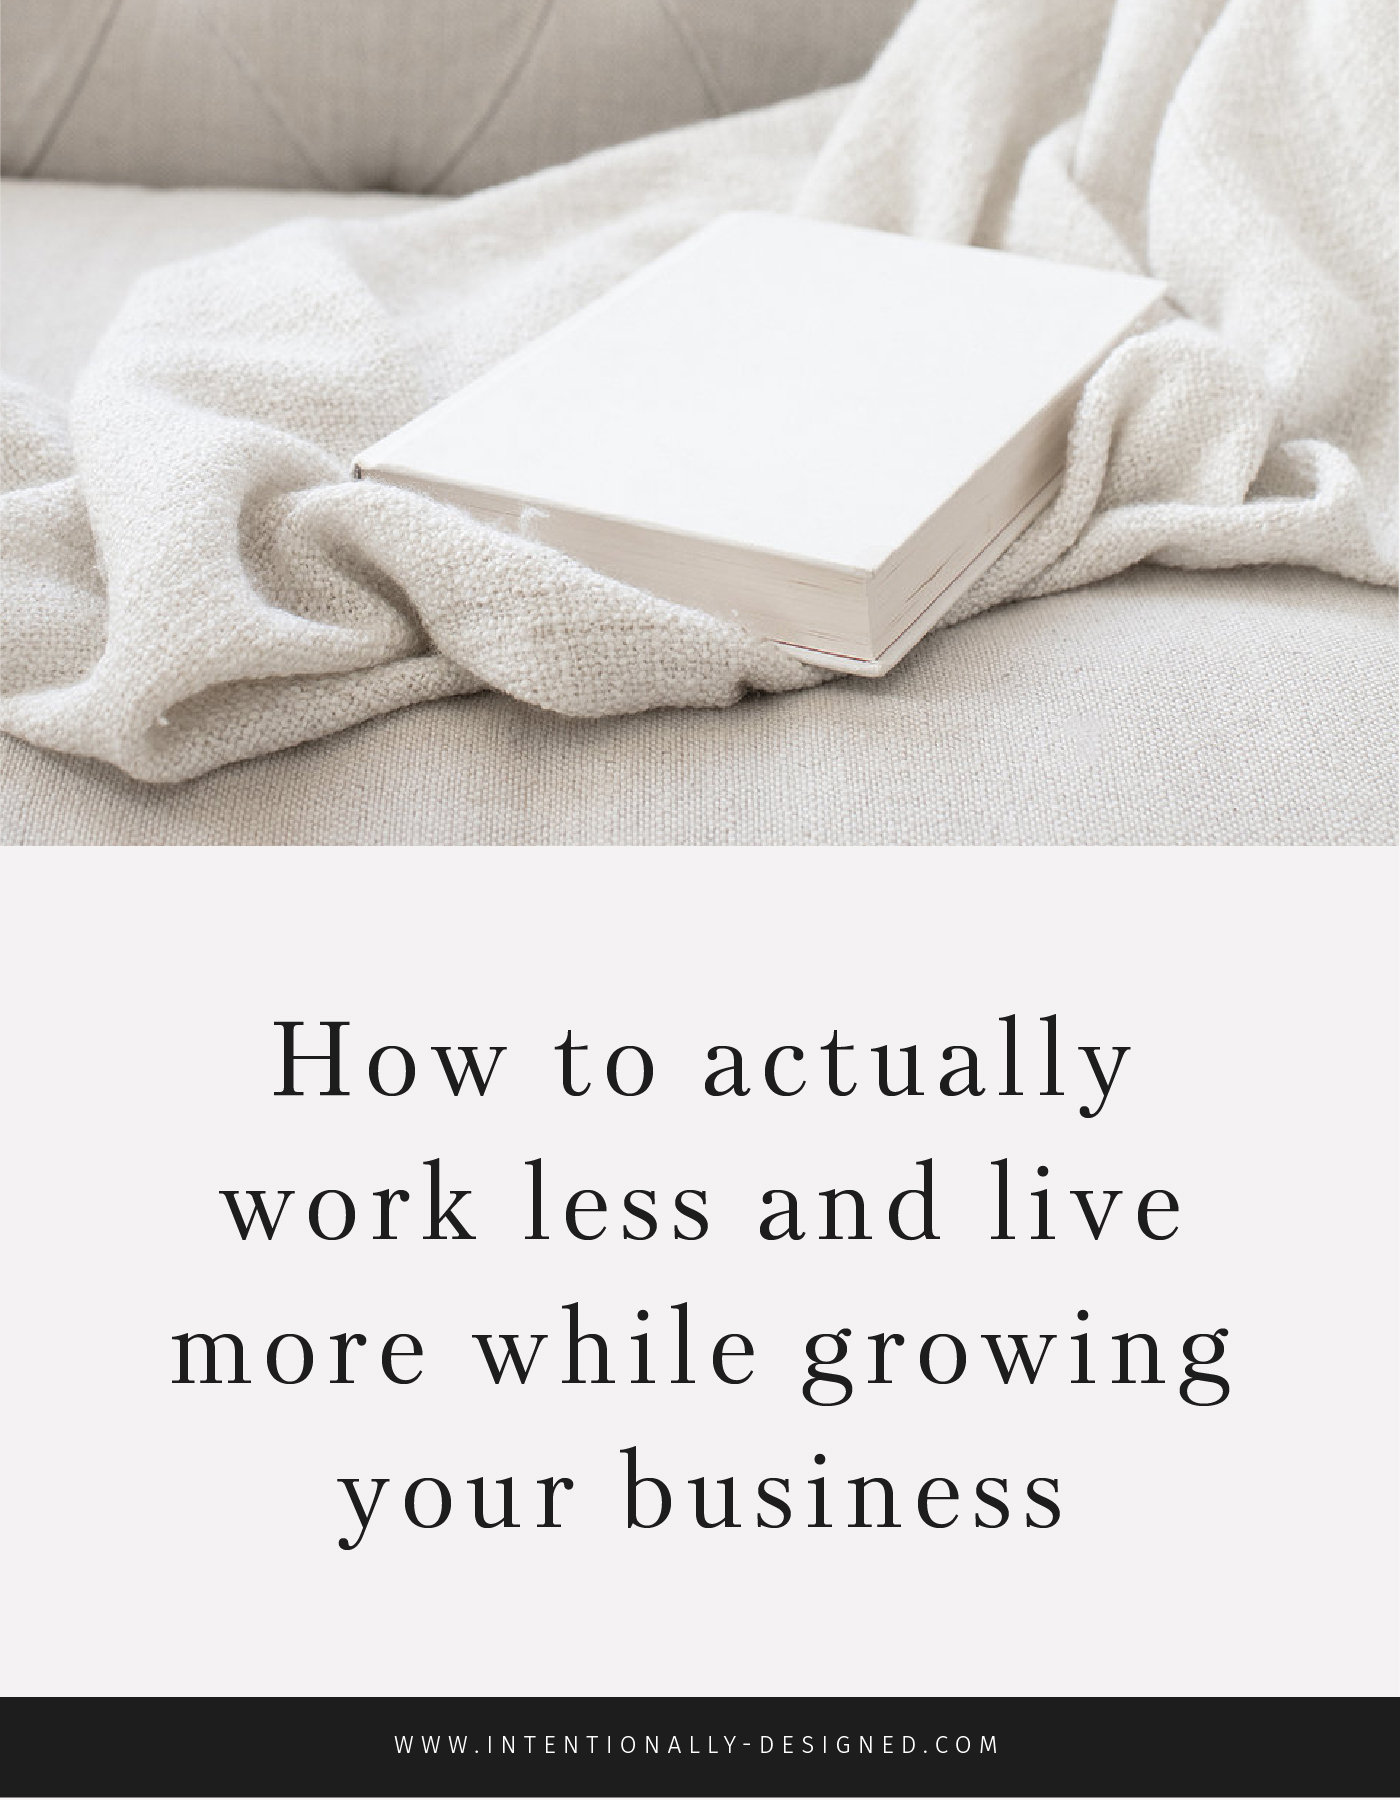 How to actually work less and live more while growing your business